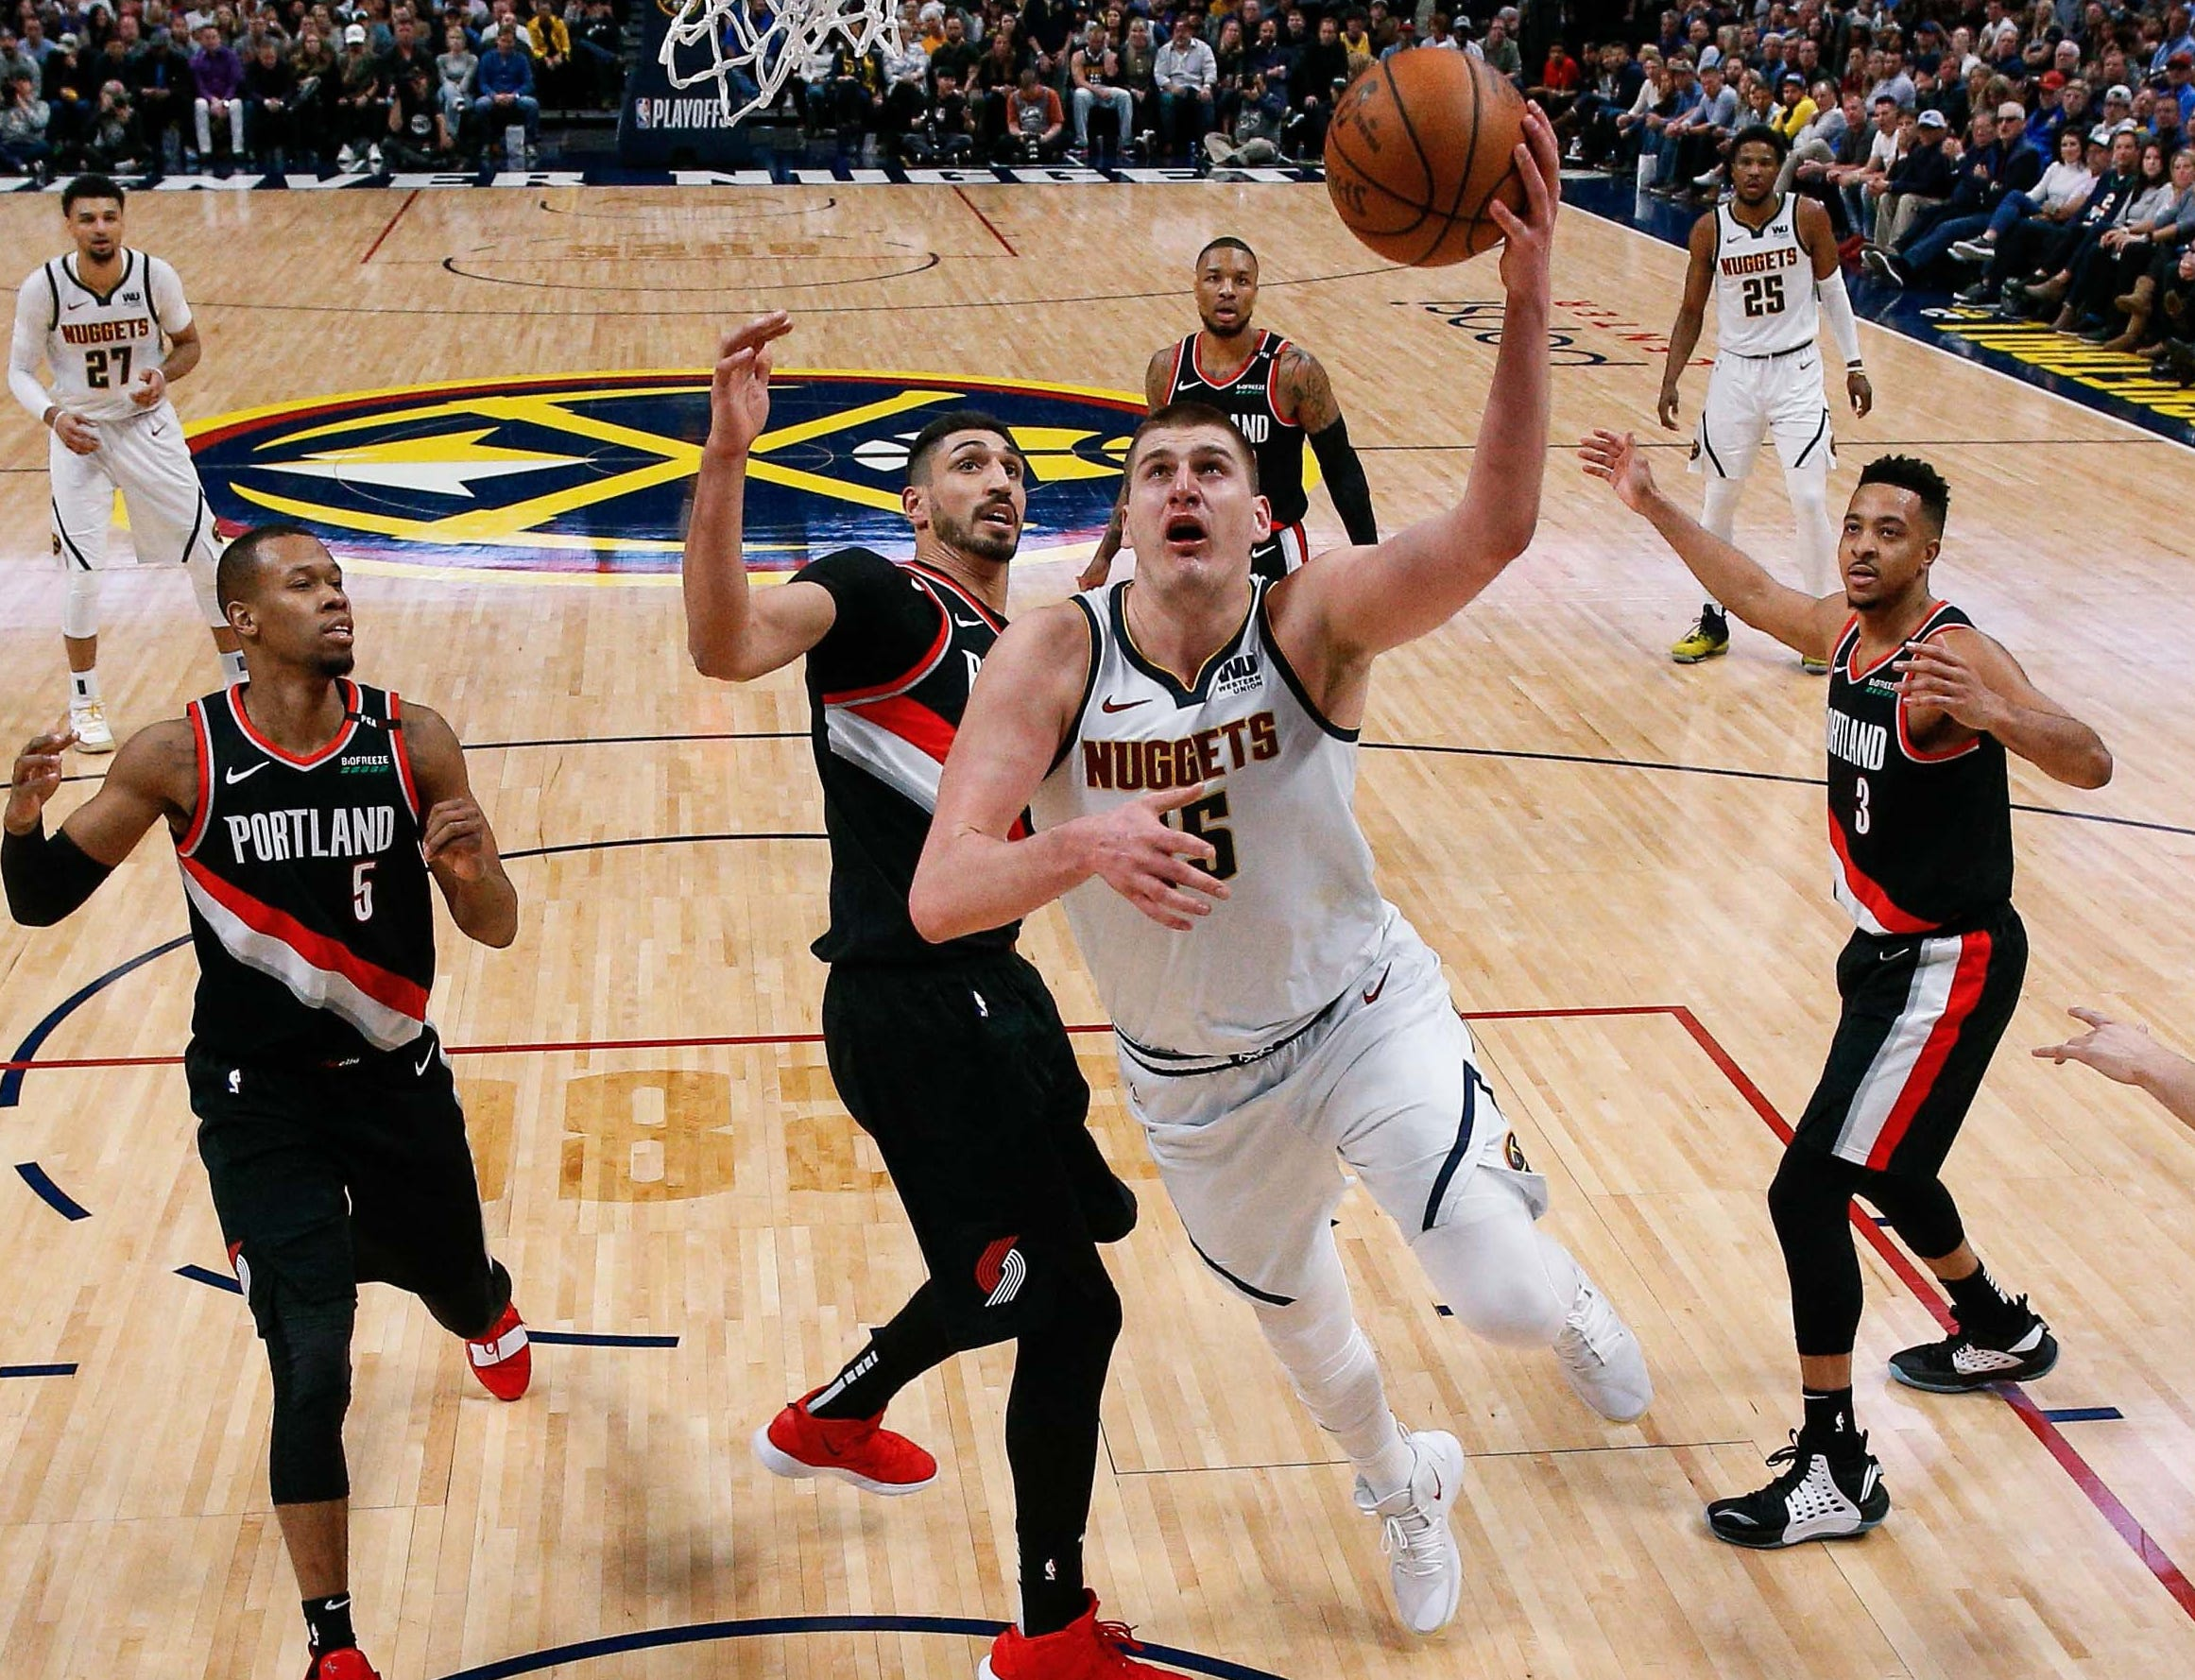 April 29: Nuggets center Nikola Jokic (15) makes a move to the basket past Trail Blazers defenders Rodney Hood (5) and Enes Kanter during Game 1 in Denver.